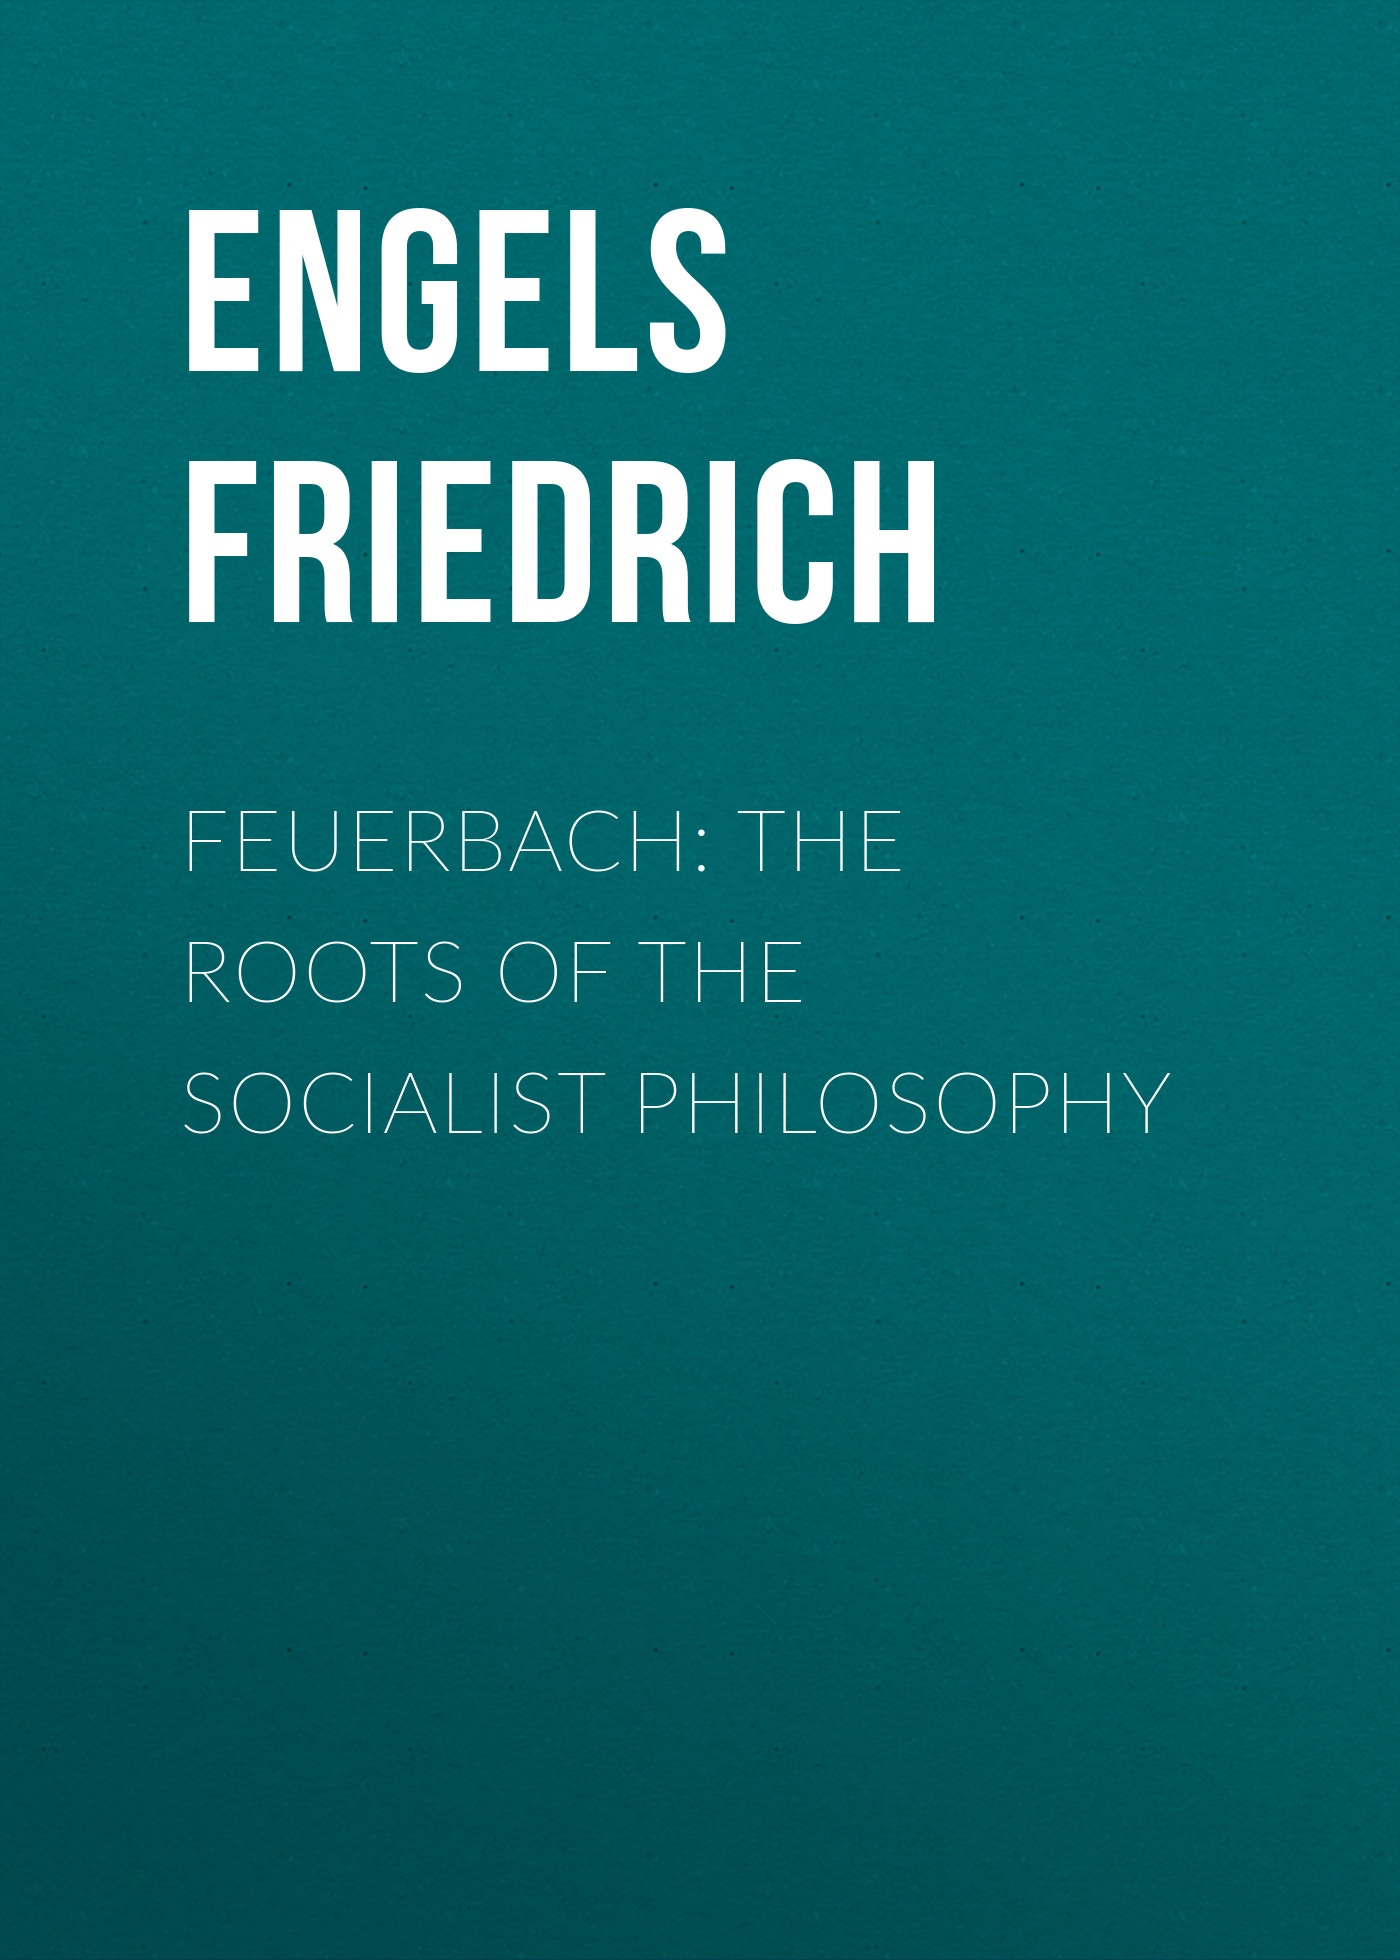 Engels Friedrich Feuerbach: The roots of the socialist philosophy roots of yoga